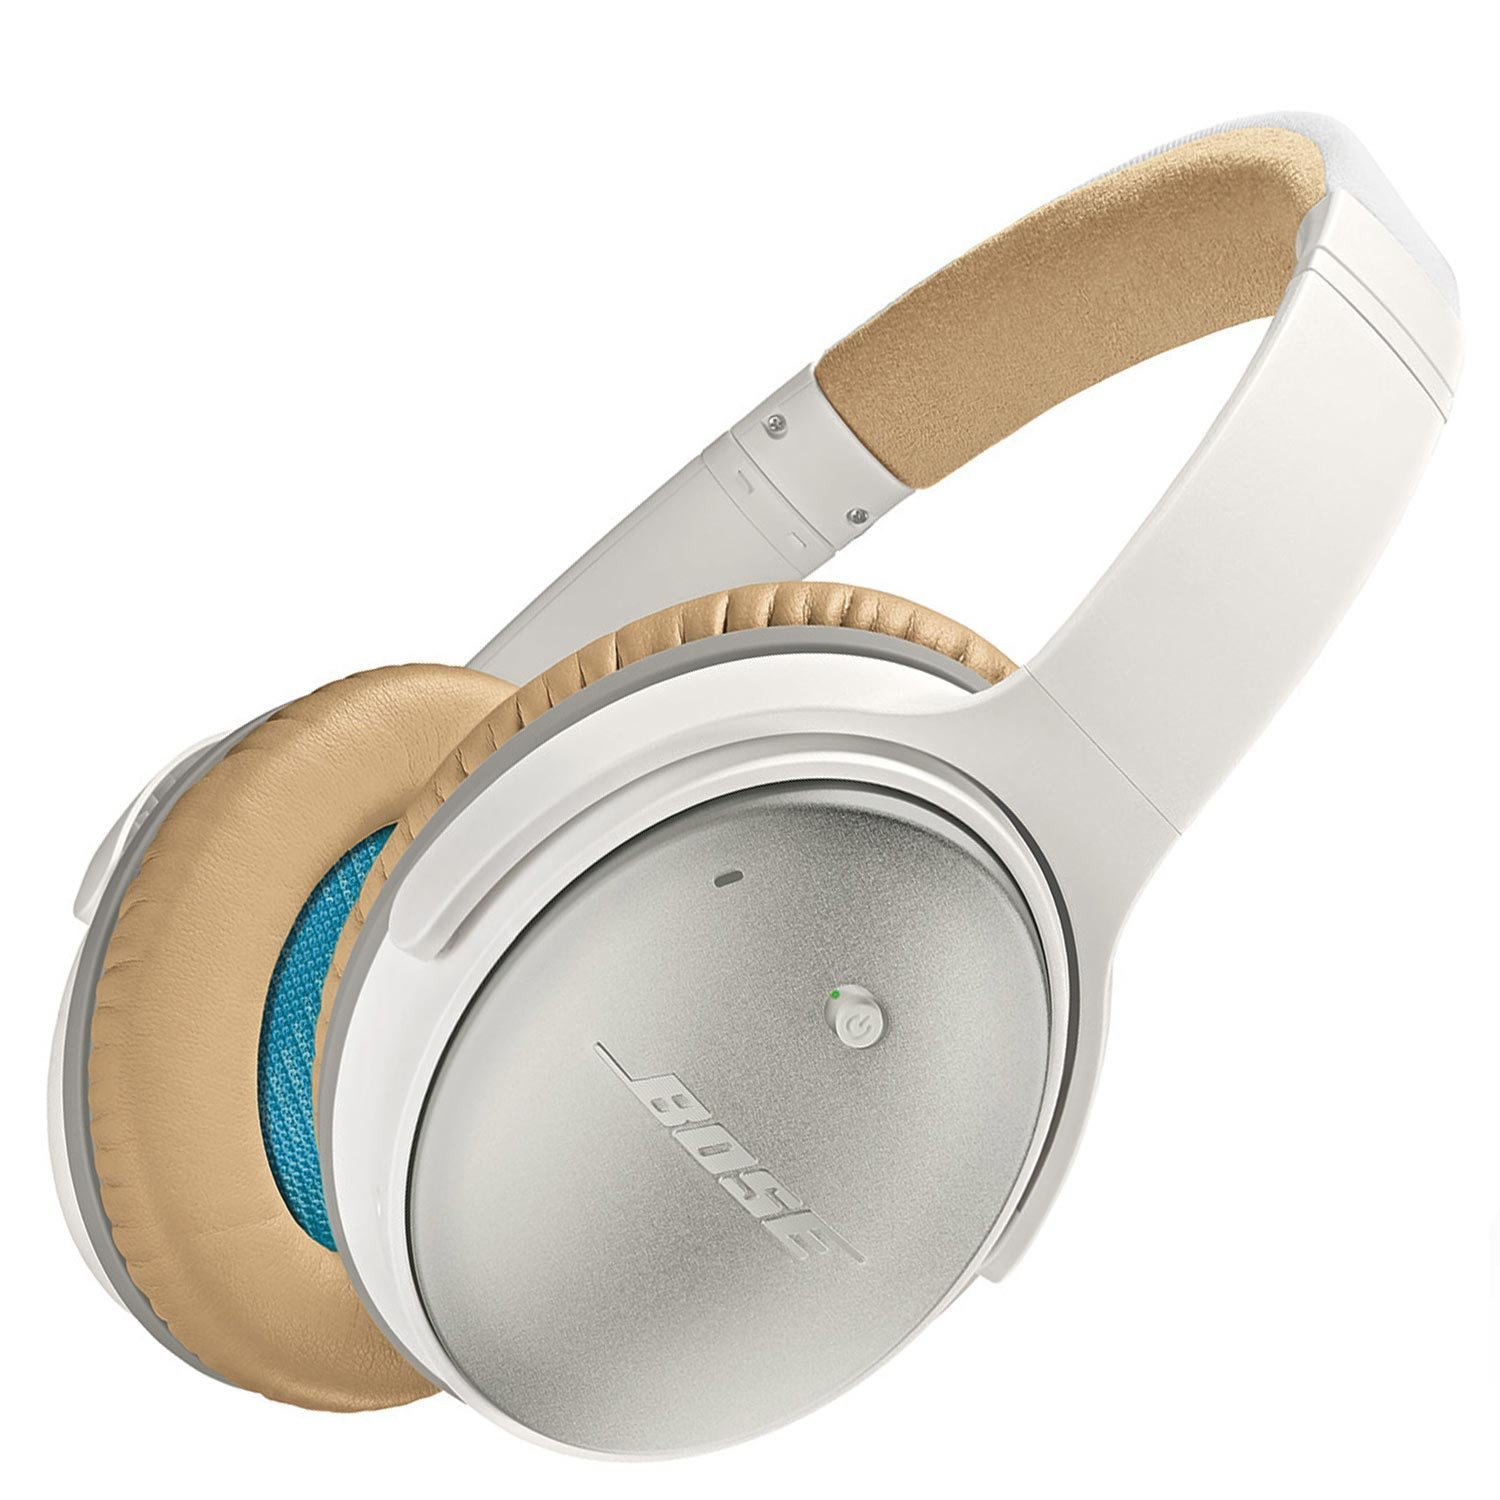 Bose earbuds qc25 - noise-cancelling earbuds bose